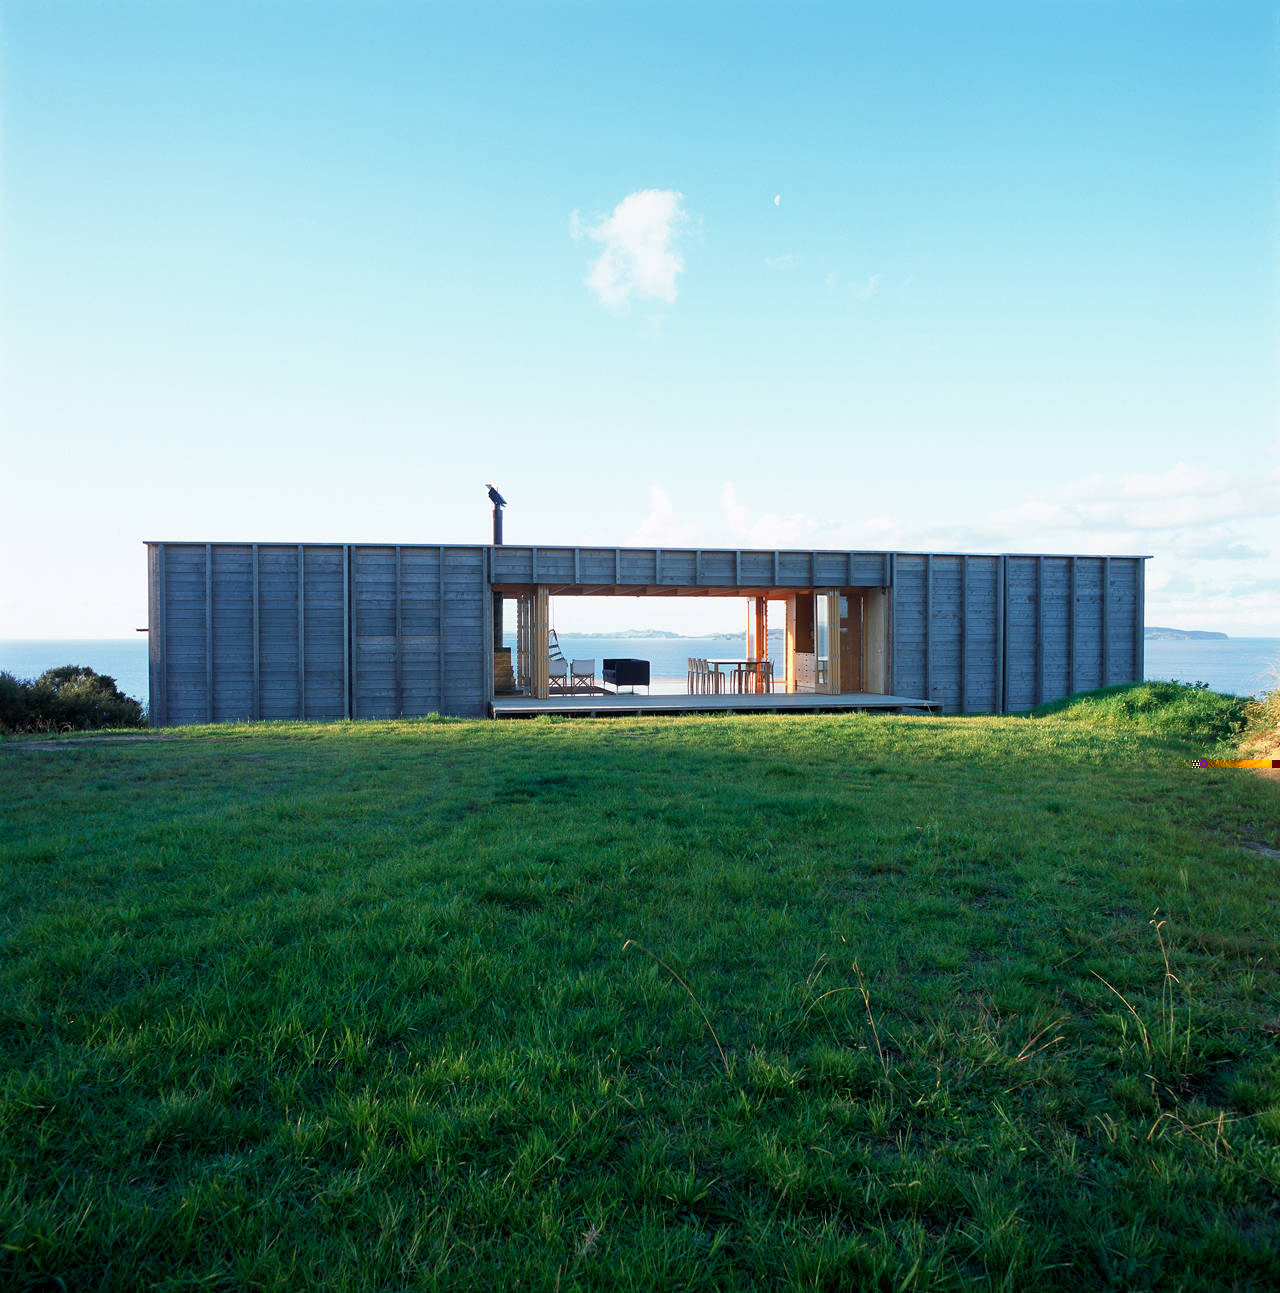 Shipping container homes crosson clarke carnachan architects coromandel new zealand - Cargo container homes ...